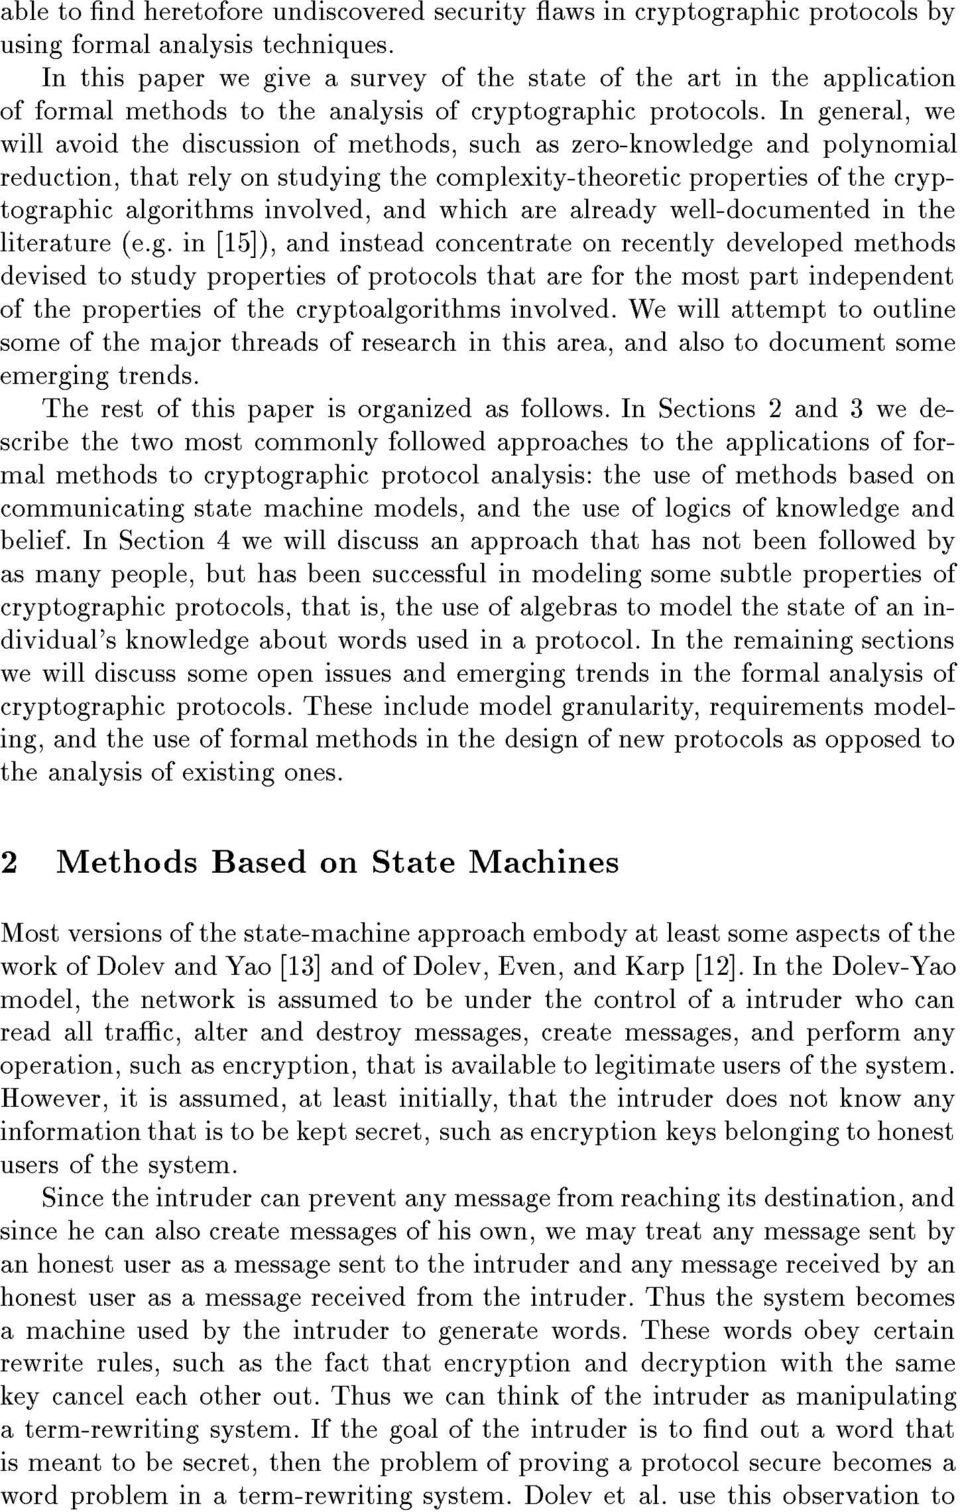 In general, we will avoid the discussion of methods, such as zero-knowledge and polynomial reduction, that rely on studying the complexity-theoretic properties of the cryptographic algorithms